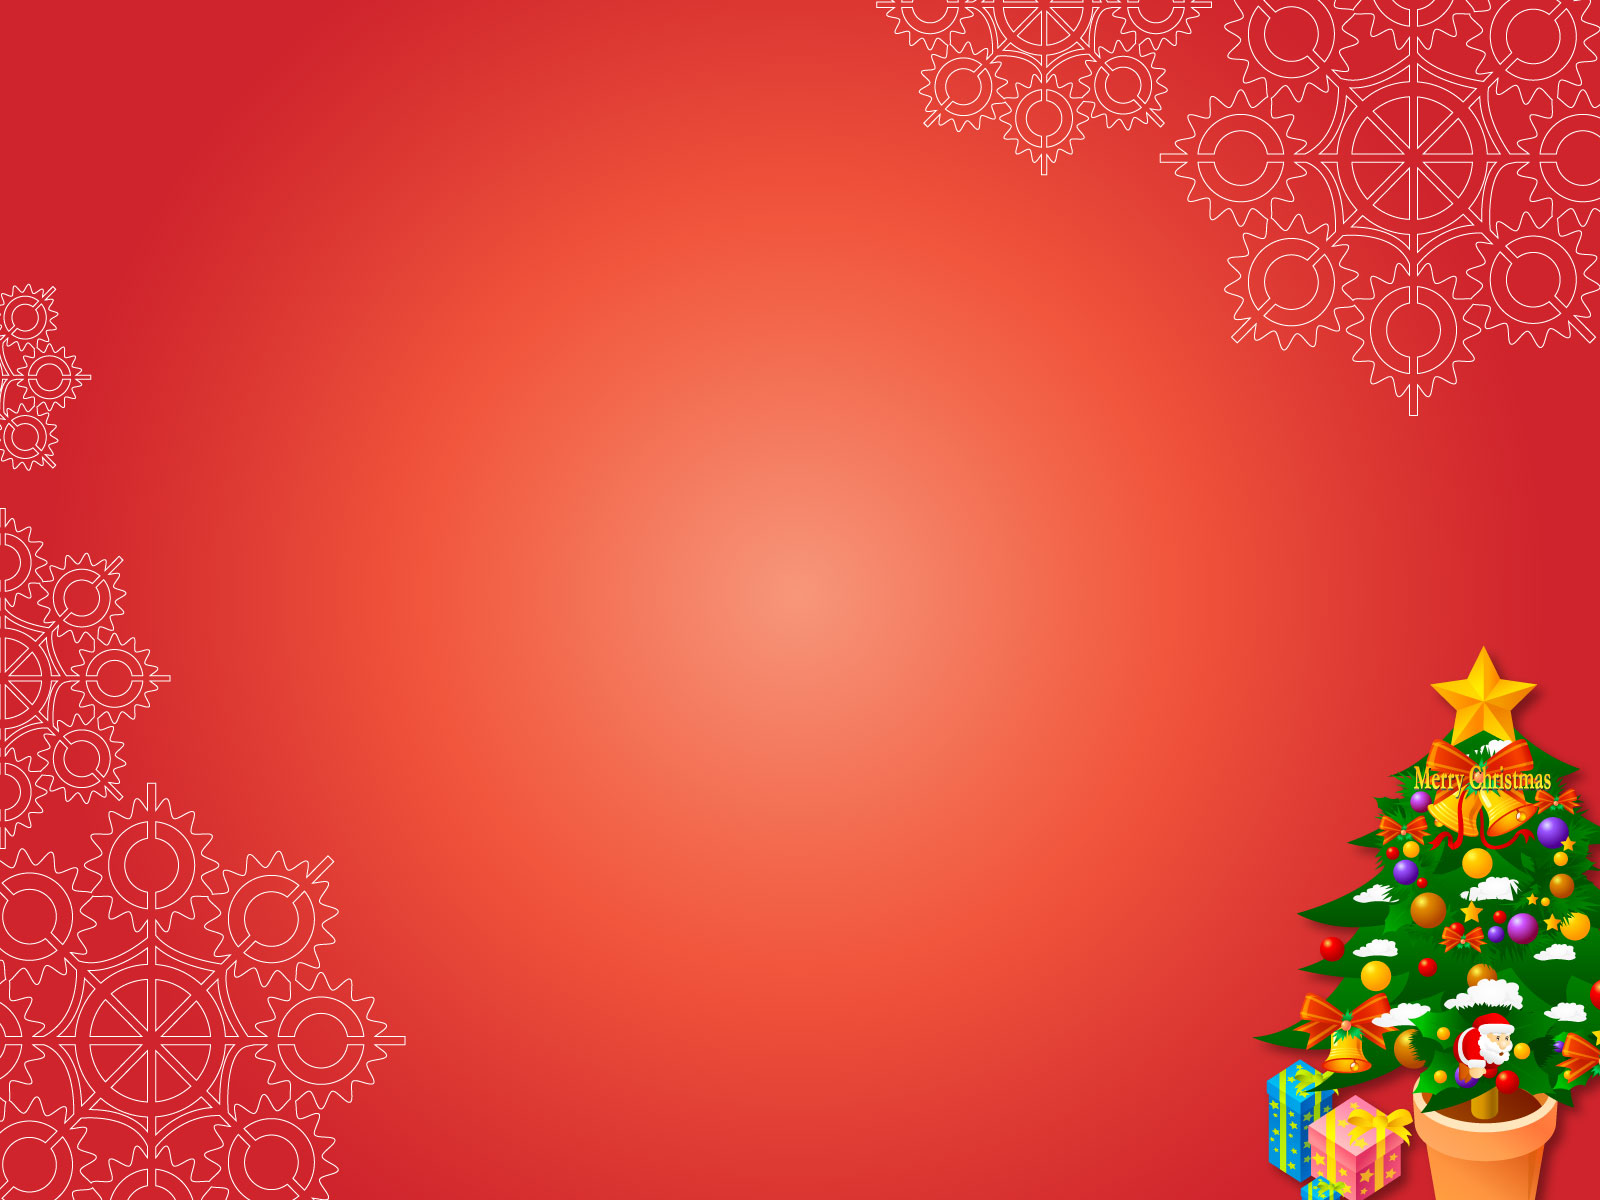 Labels Christmas Backgrounds Christmas Decor Christmas Wallpapers 1600x1200